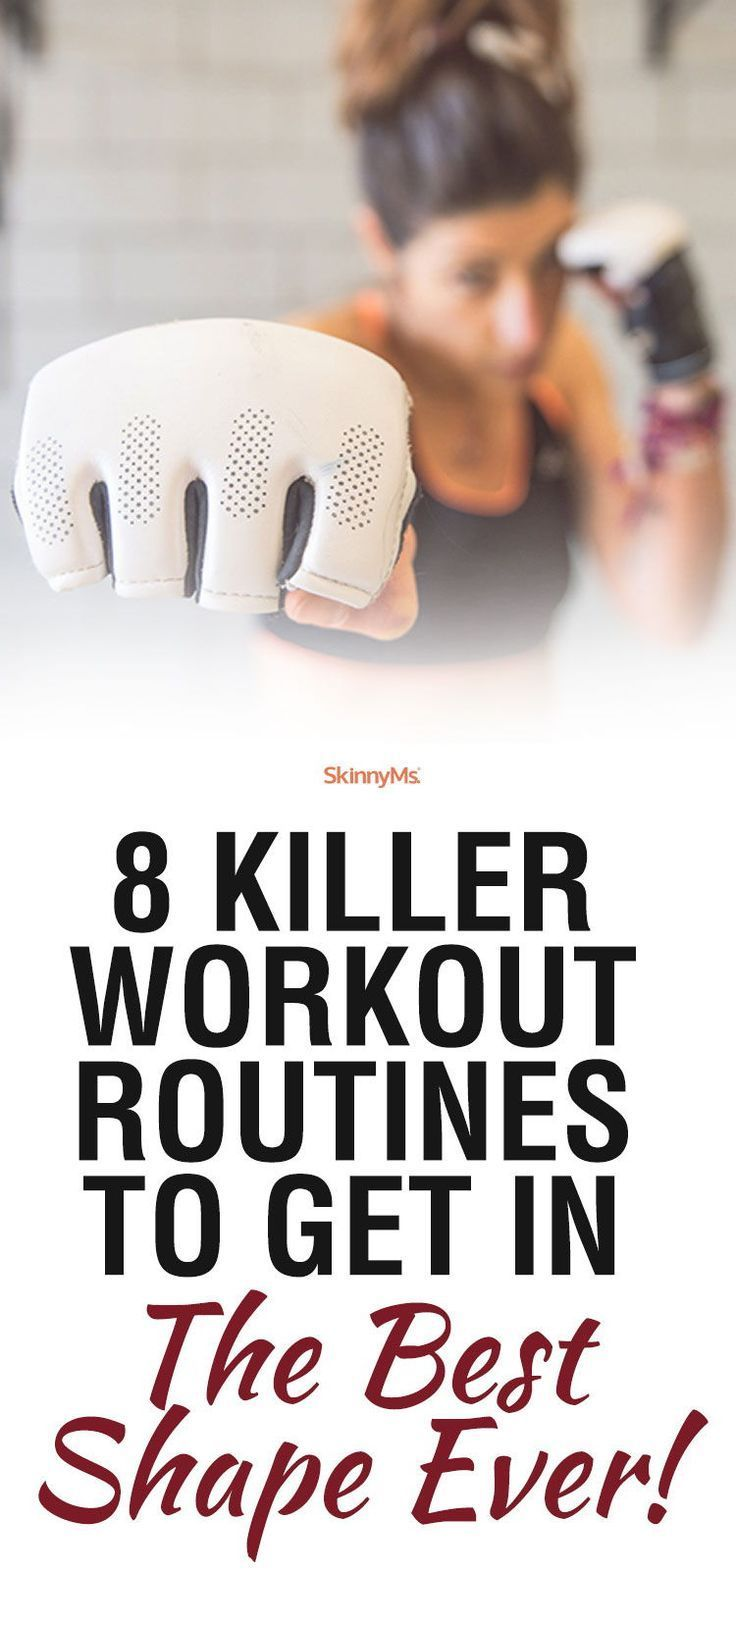 8 Killer Workout Routines to Get In the Best Shape Ever